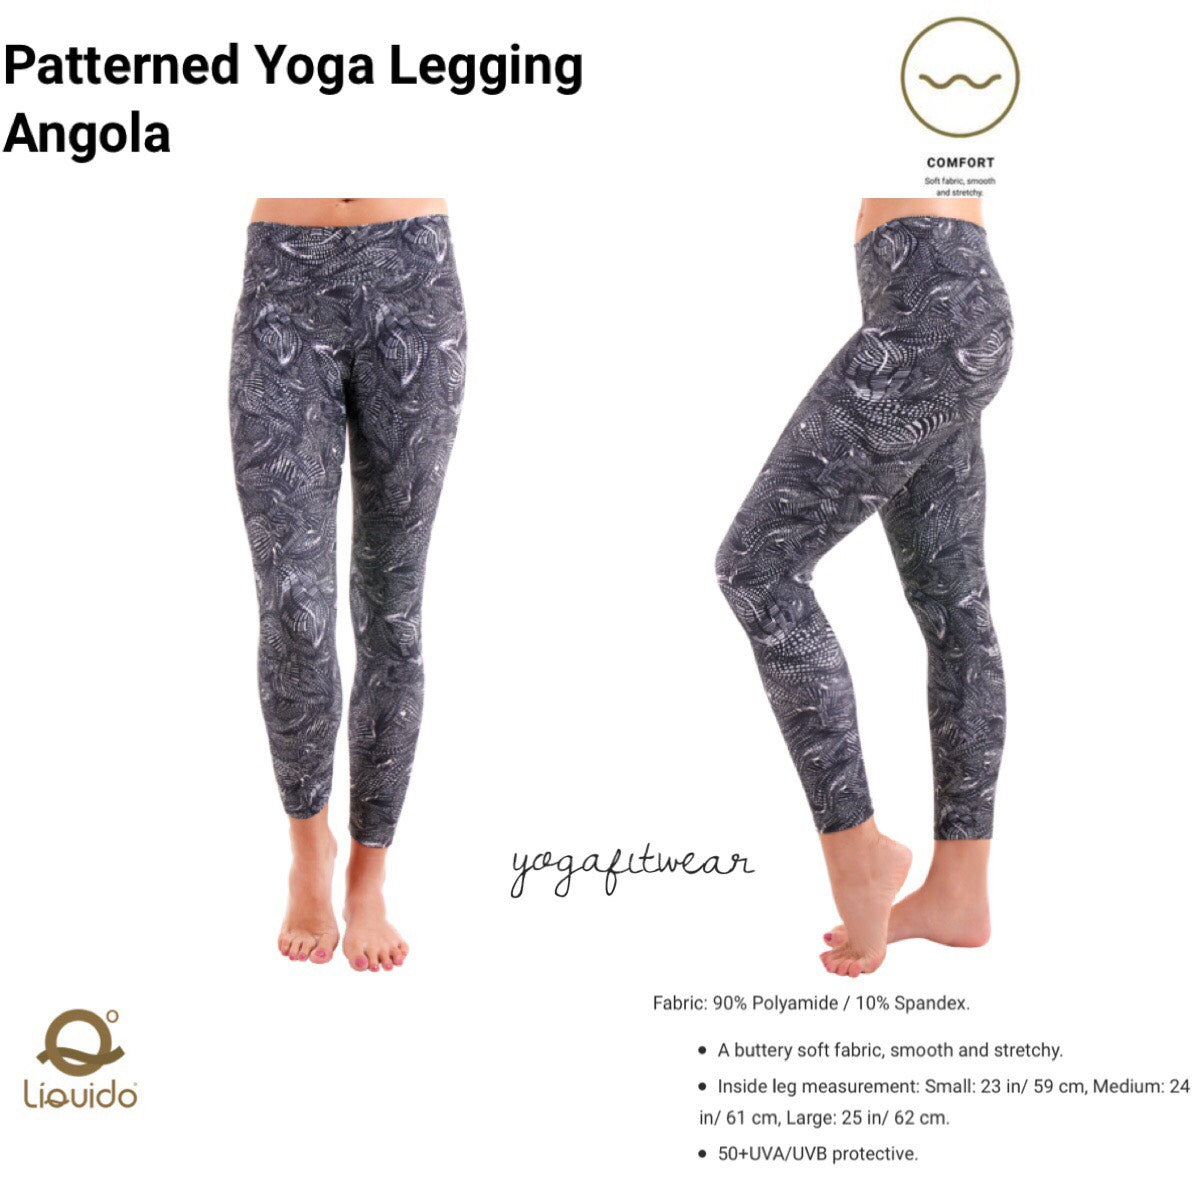 Liquido - Patterned Yoga Legging  :Angola (LQ00517)